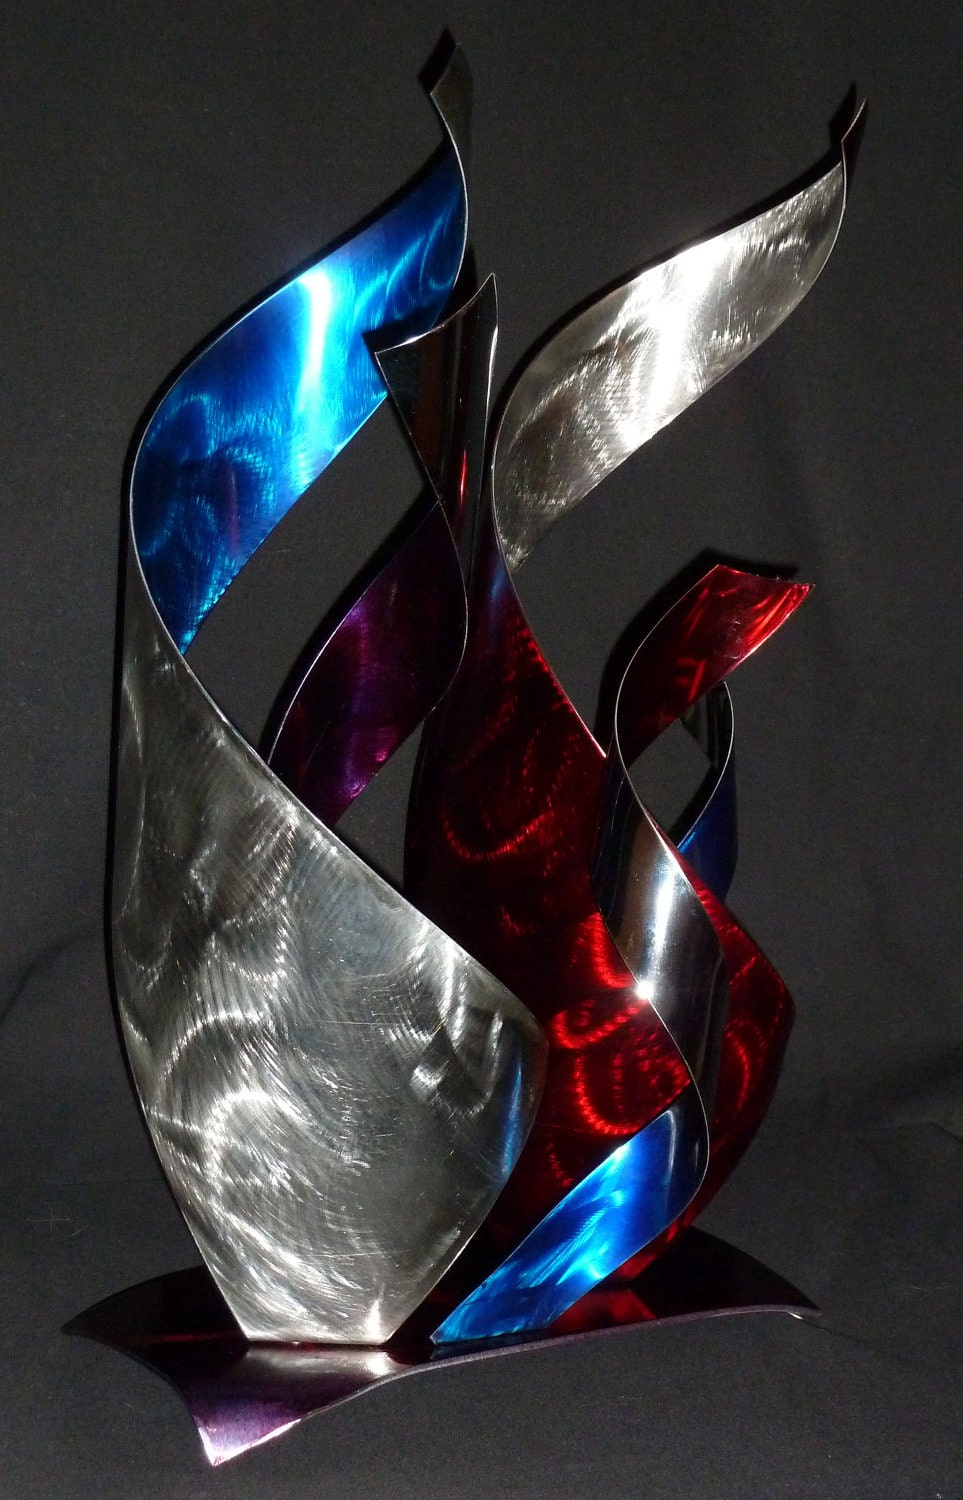 abstract metal art sculpture by dennis boyd db designs